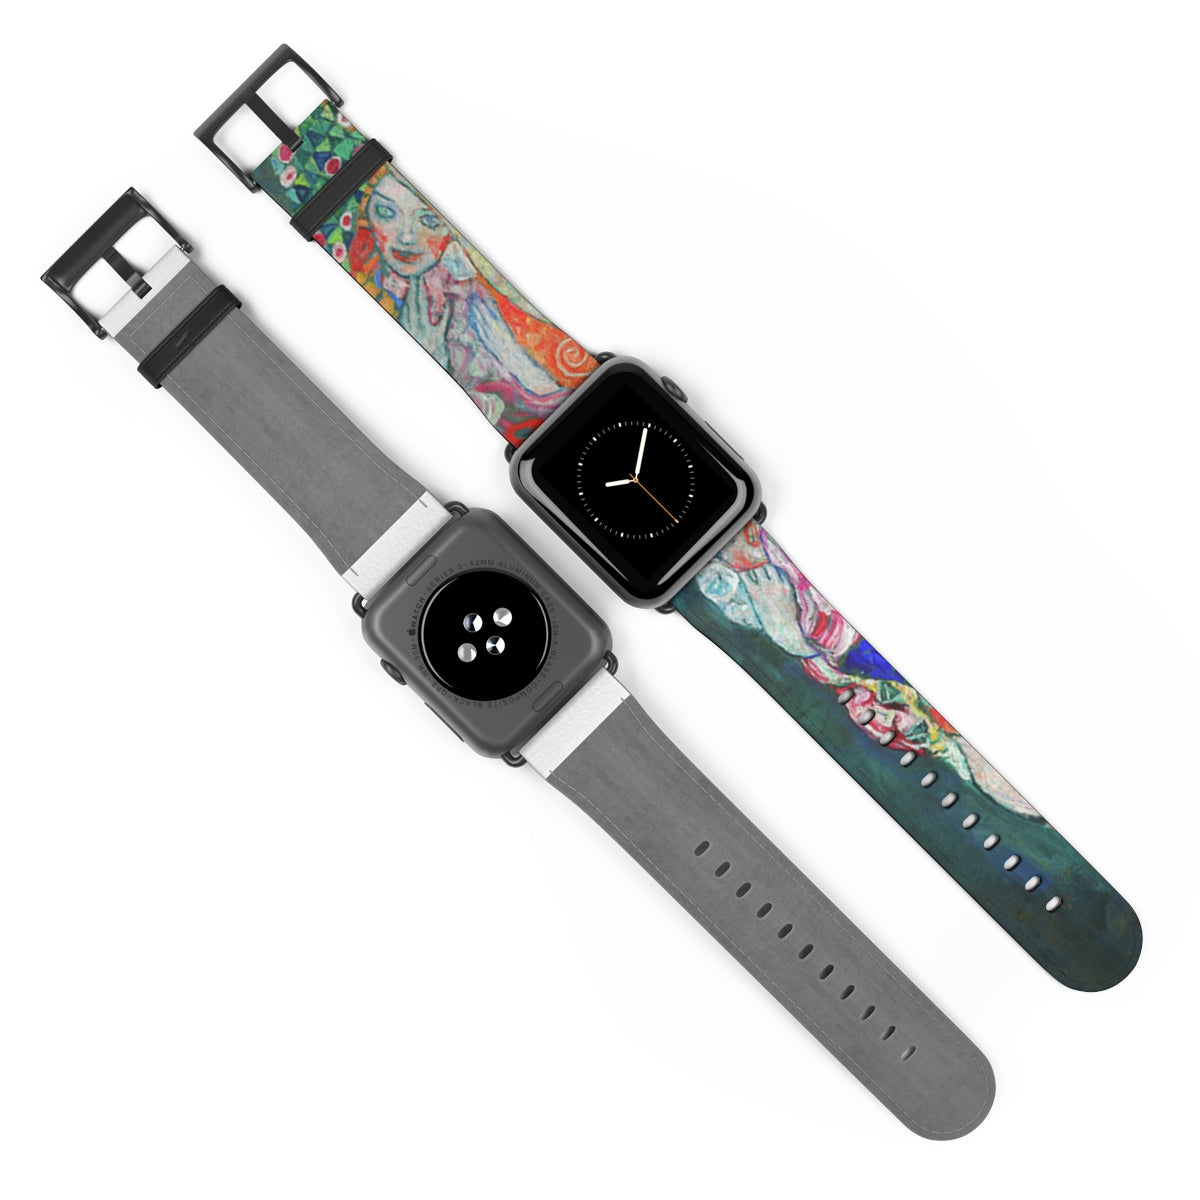 Life and Death [1915] Watch Strap - Gustav Klimt Kiaroskuro Decor- Canvas Prints, Home Décor & Fashion